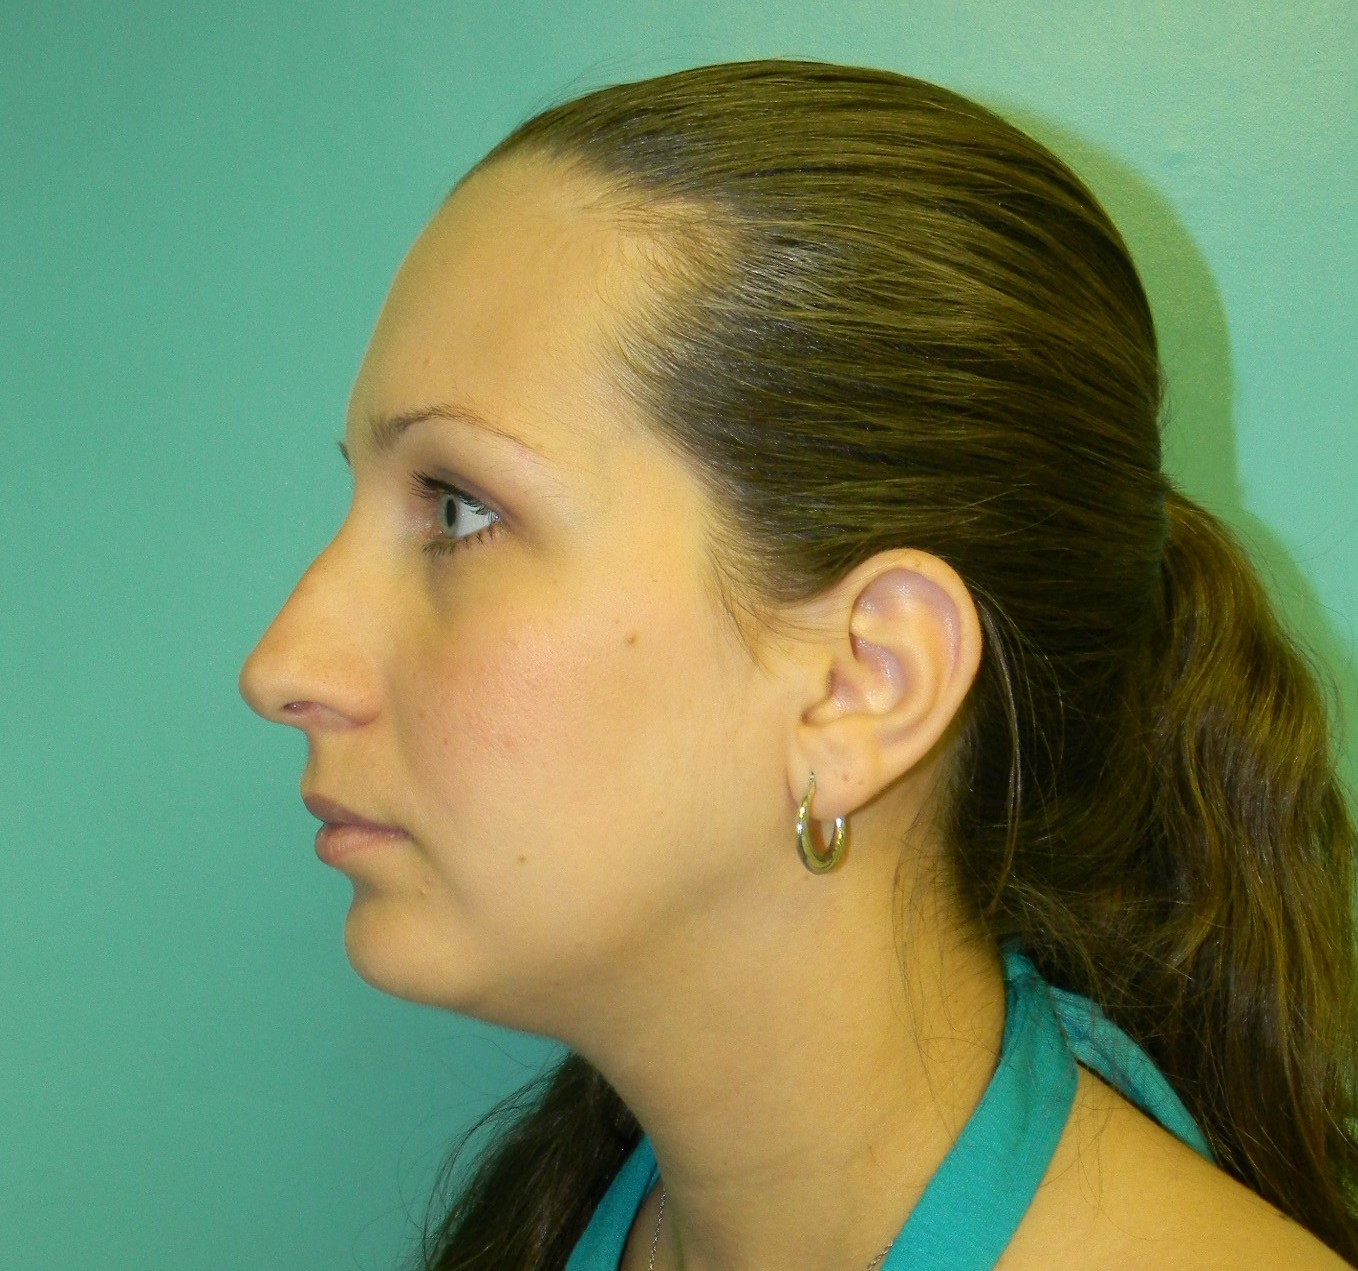 Nose Job- Rhinoplasty- Before